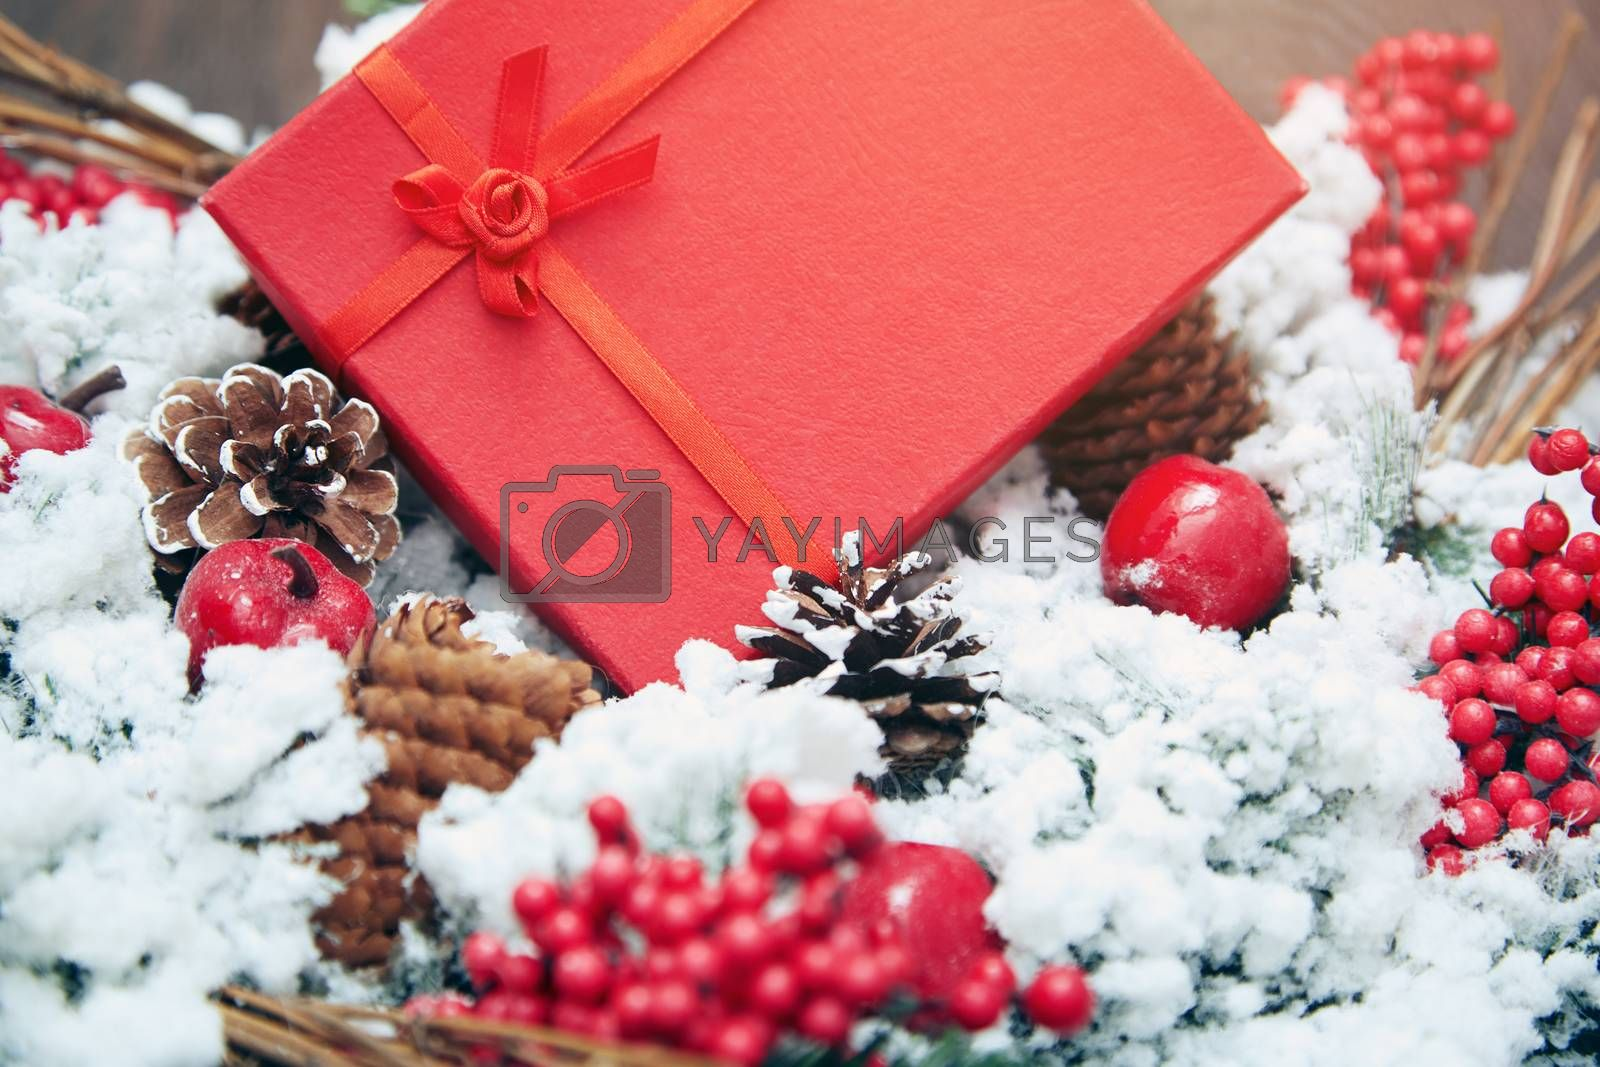 Christmas gift in a red box by Novic